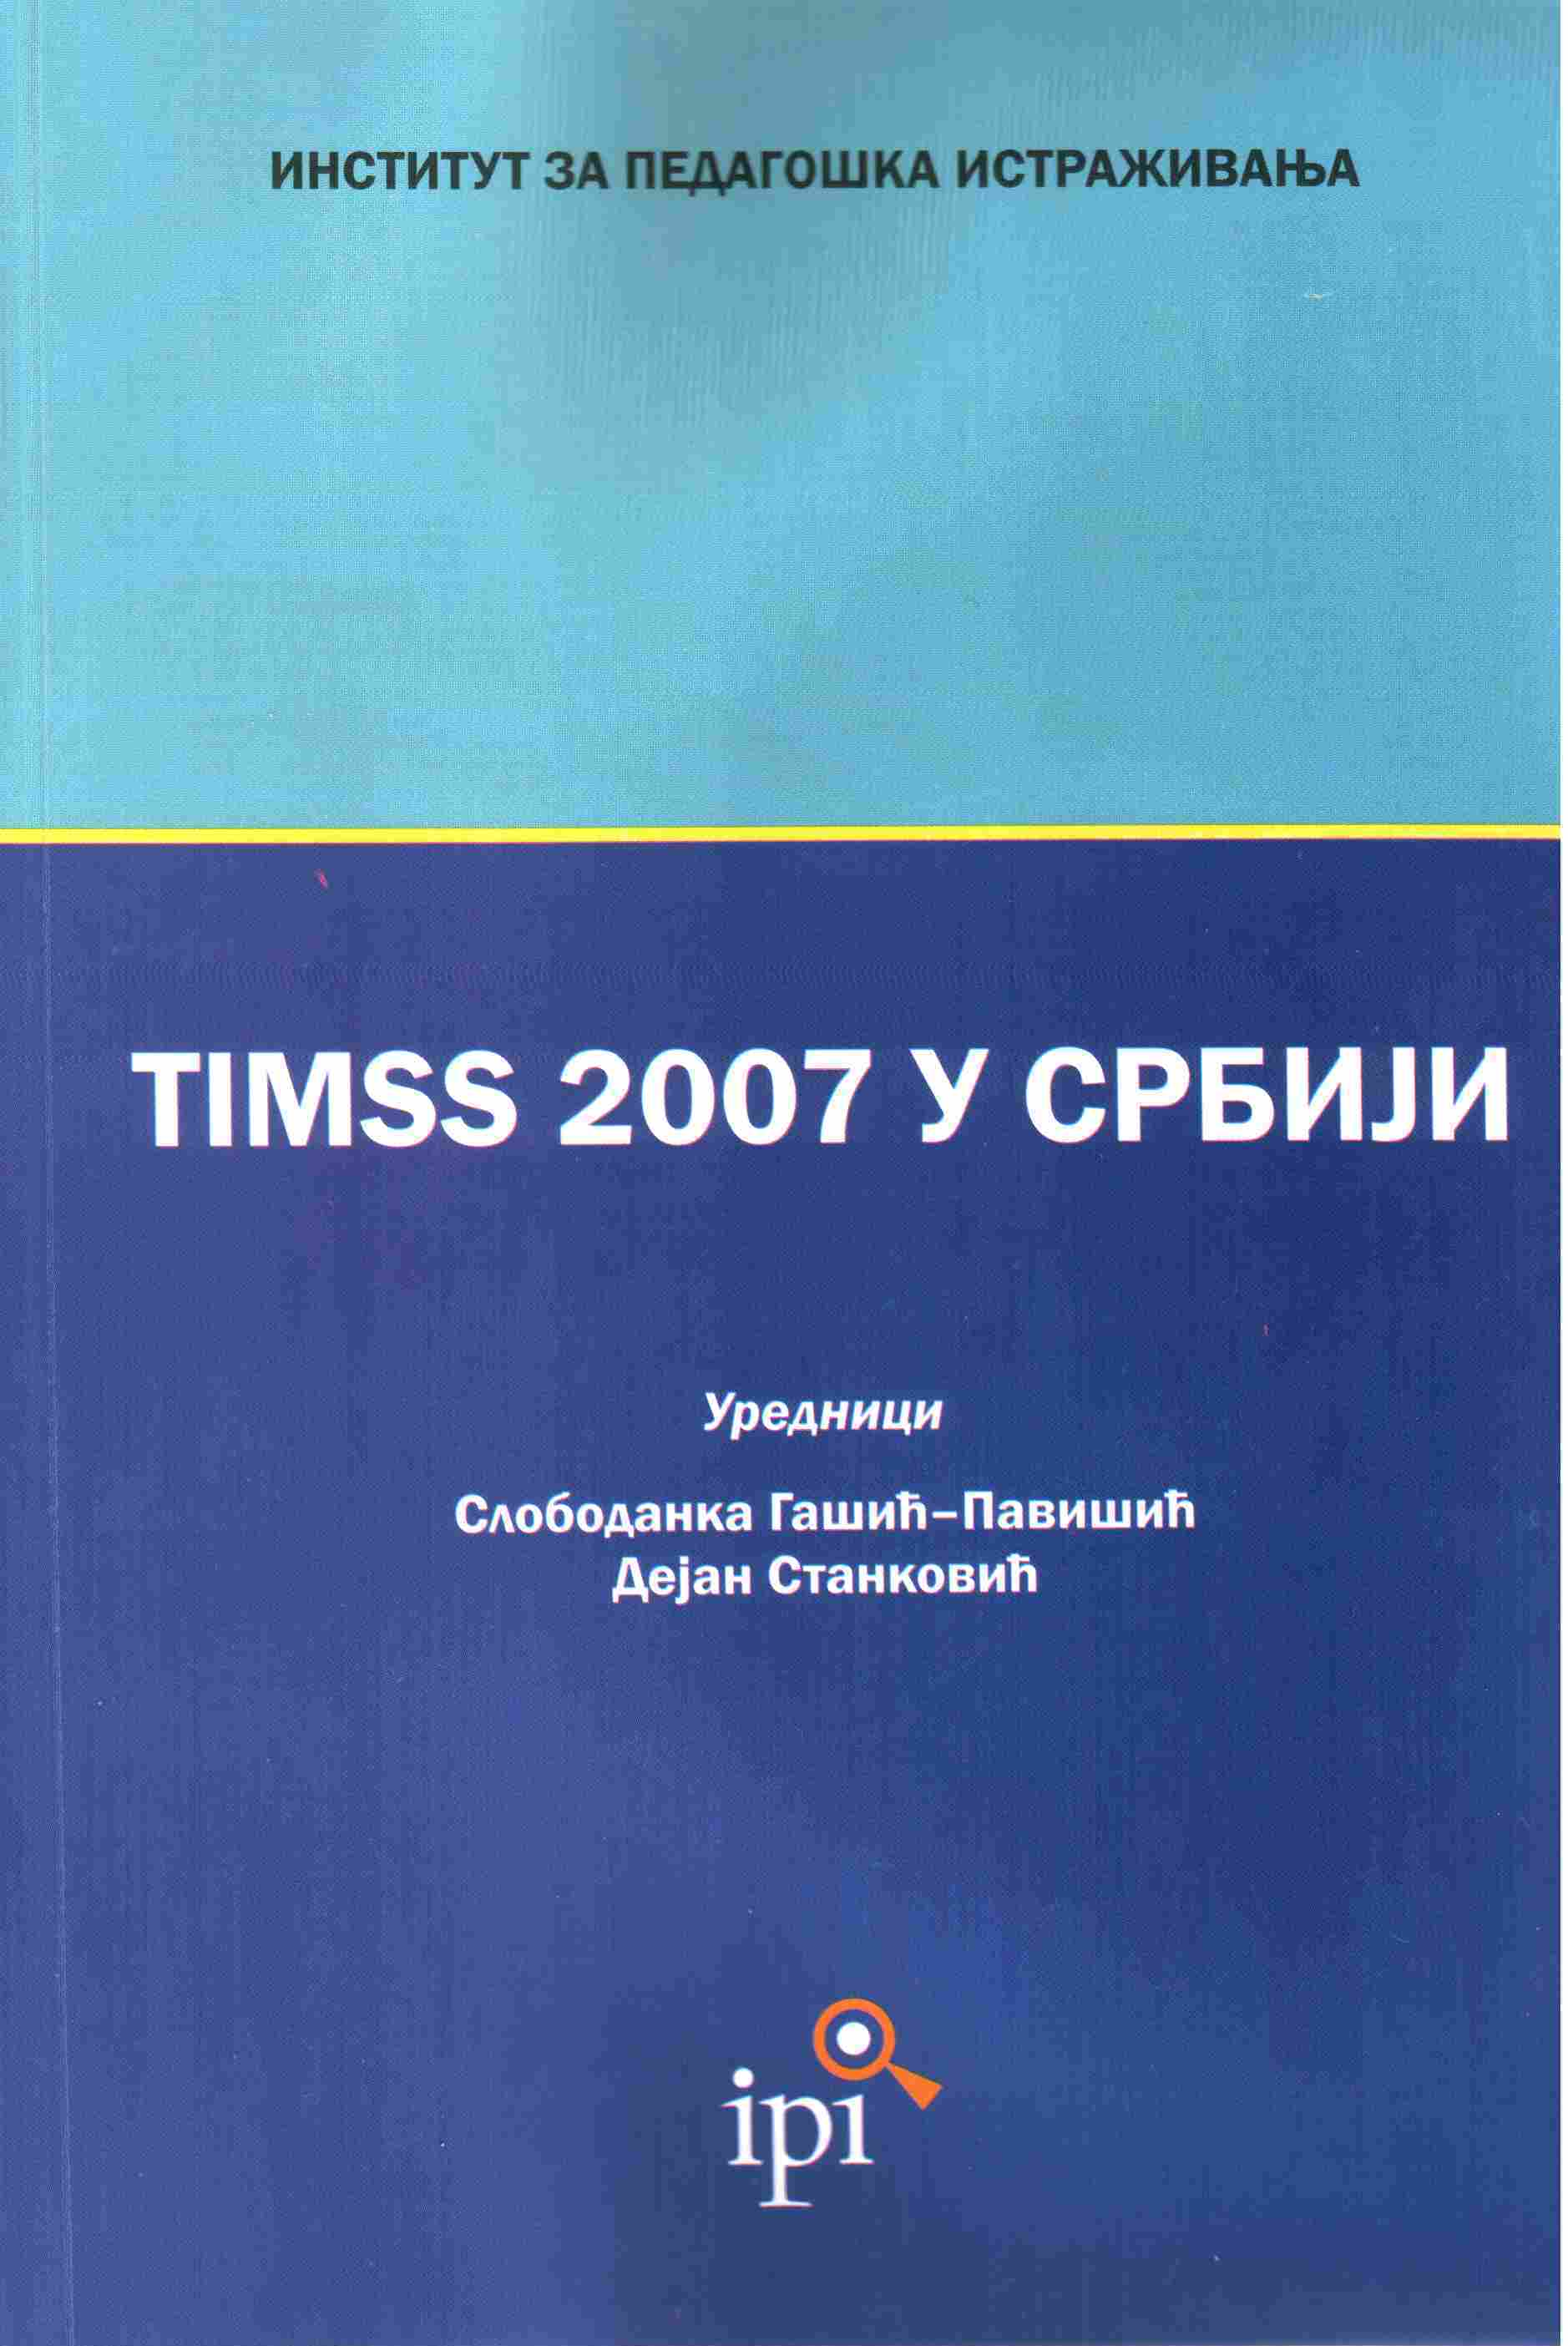 TIMSS-2007